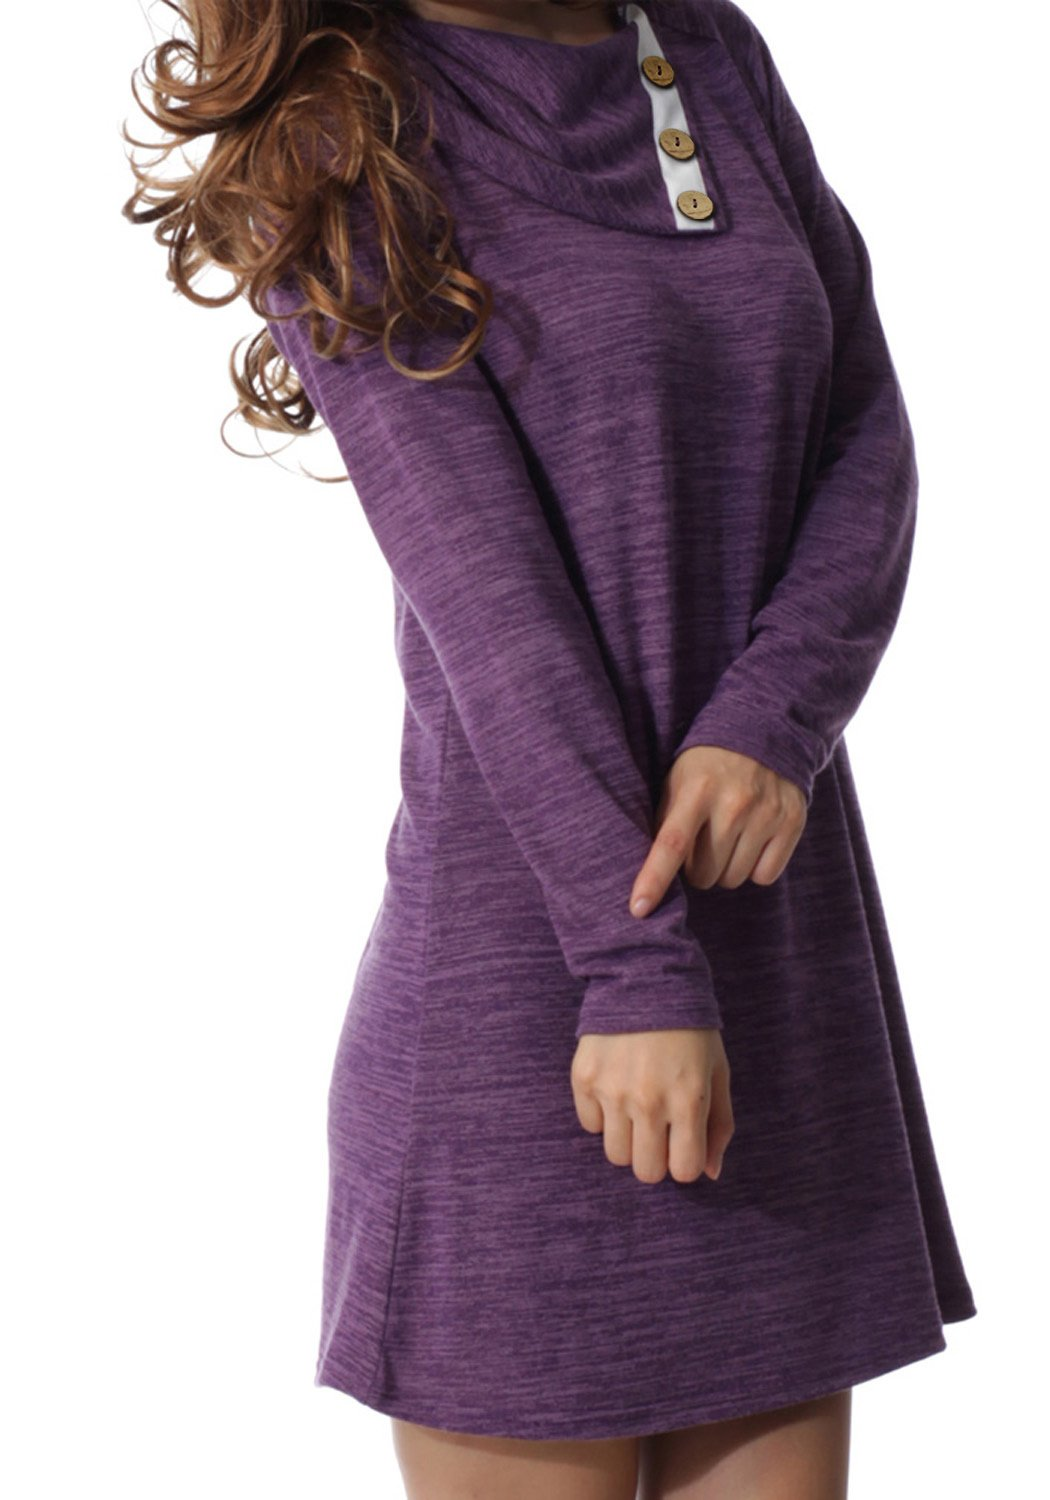 Sweater Dress - Women Crewneck Long Sleeve Tie Sweater Dress